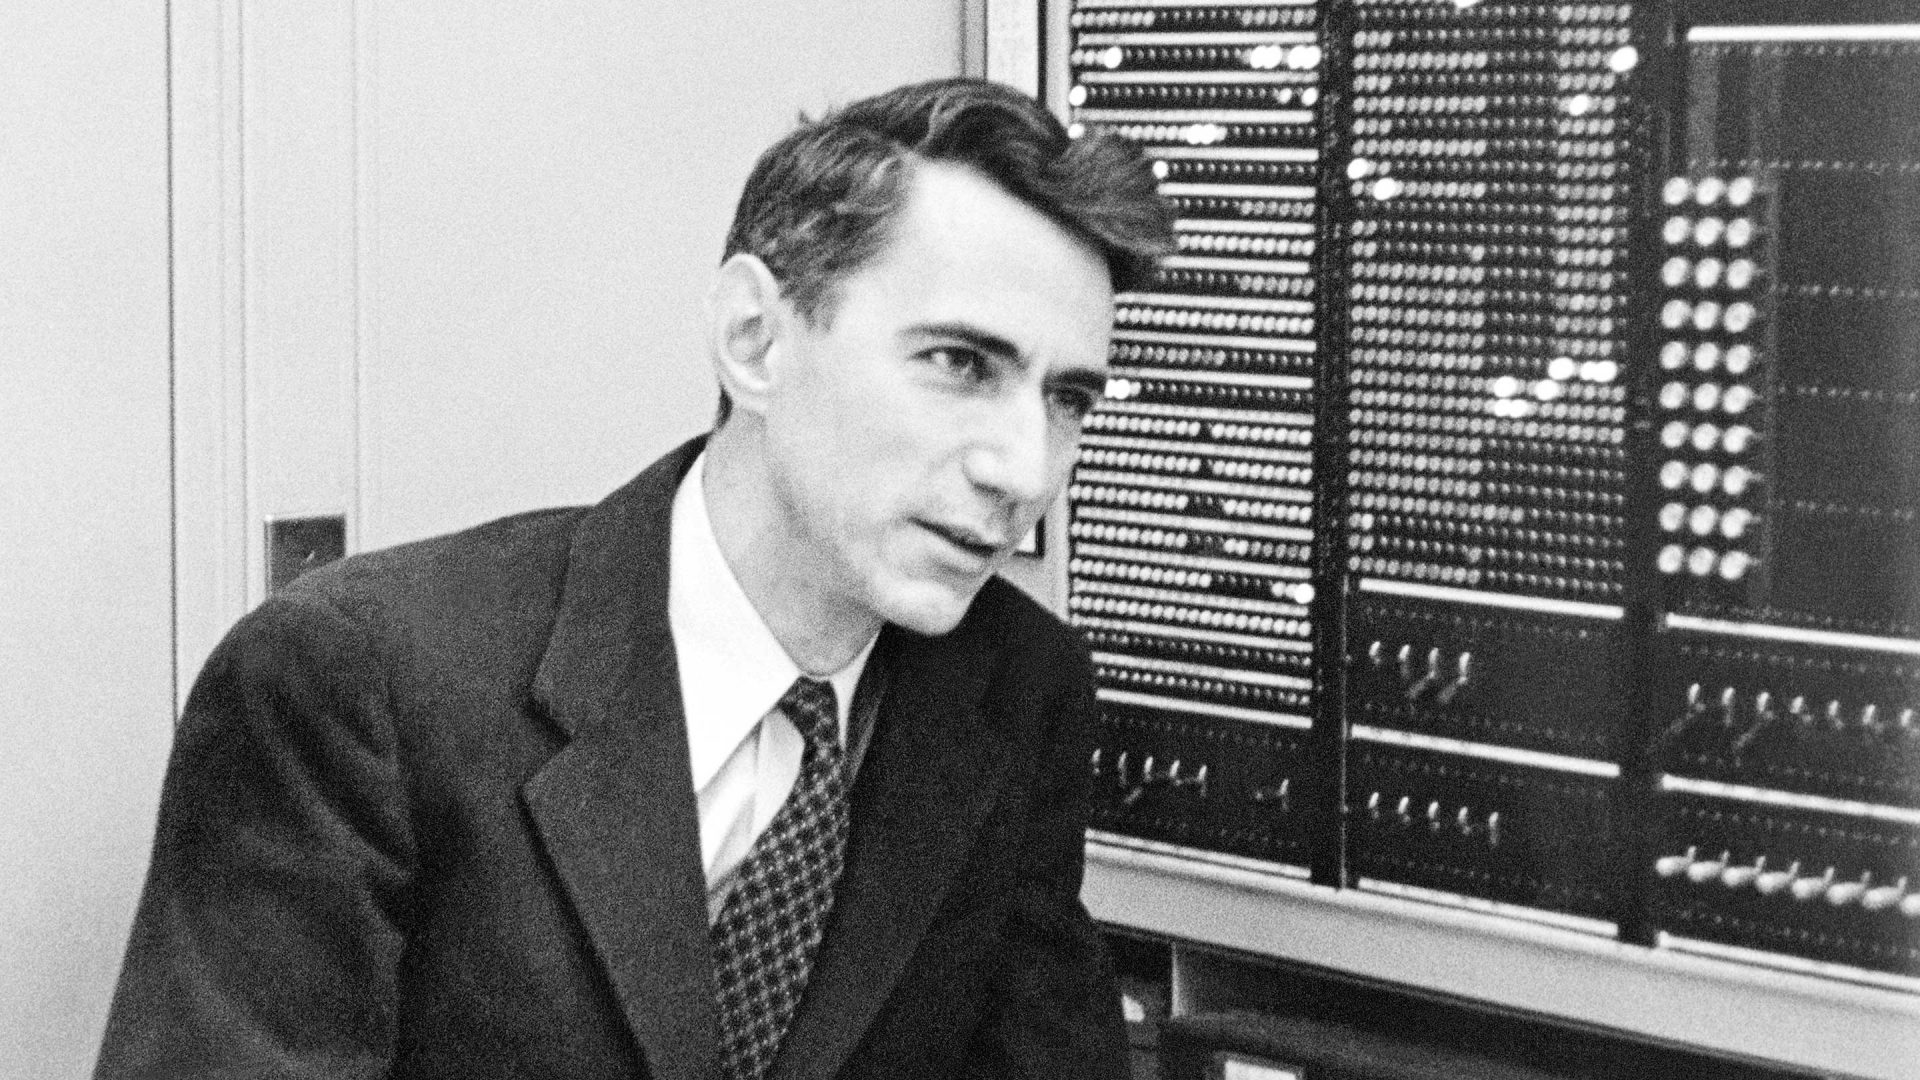 Claude Shannon - Estate of Francis Bello / Science Source